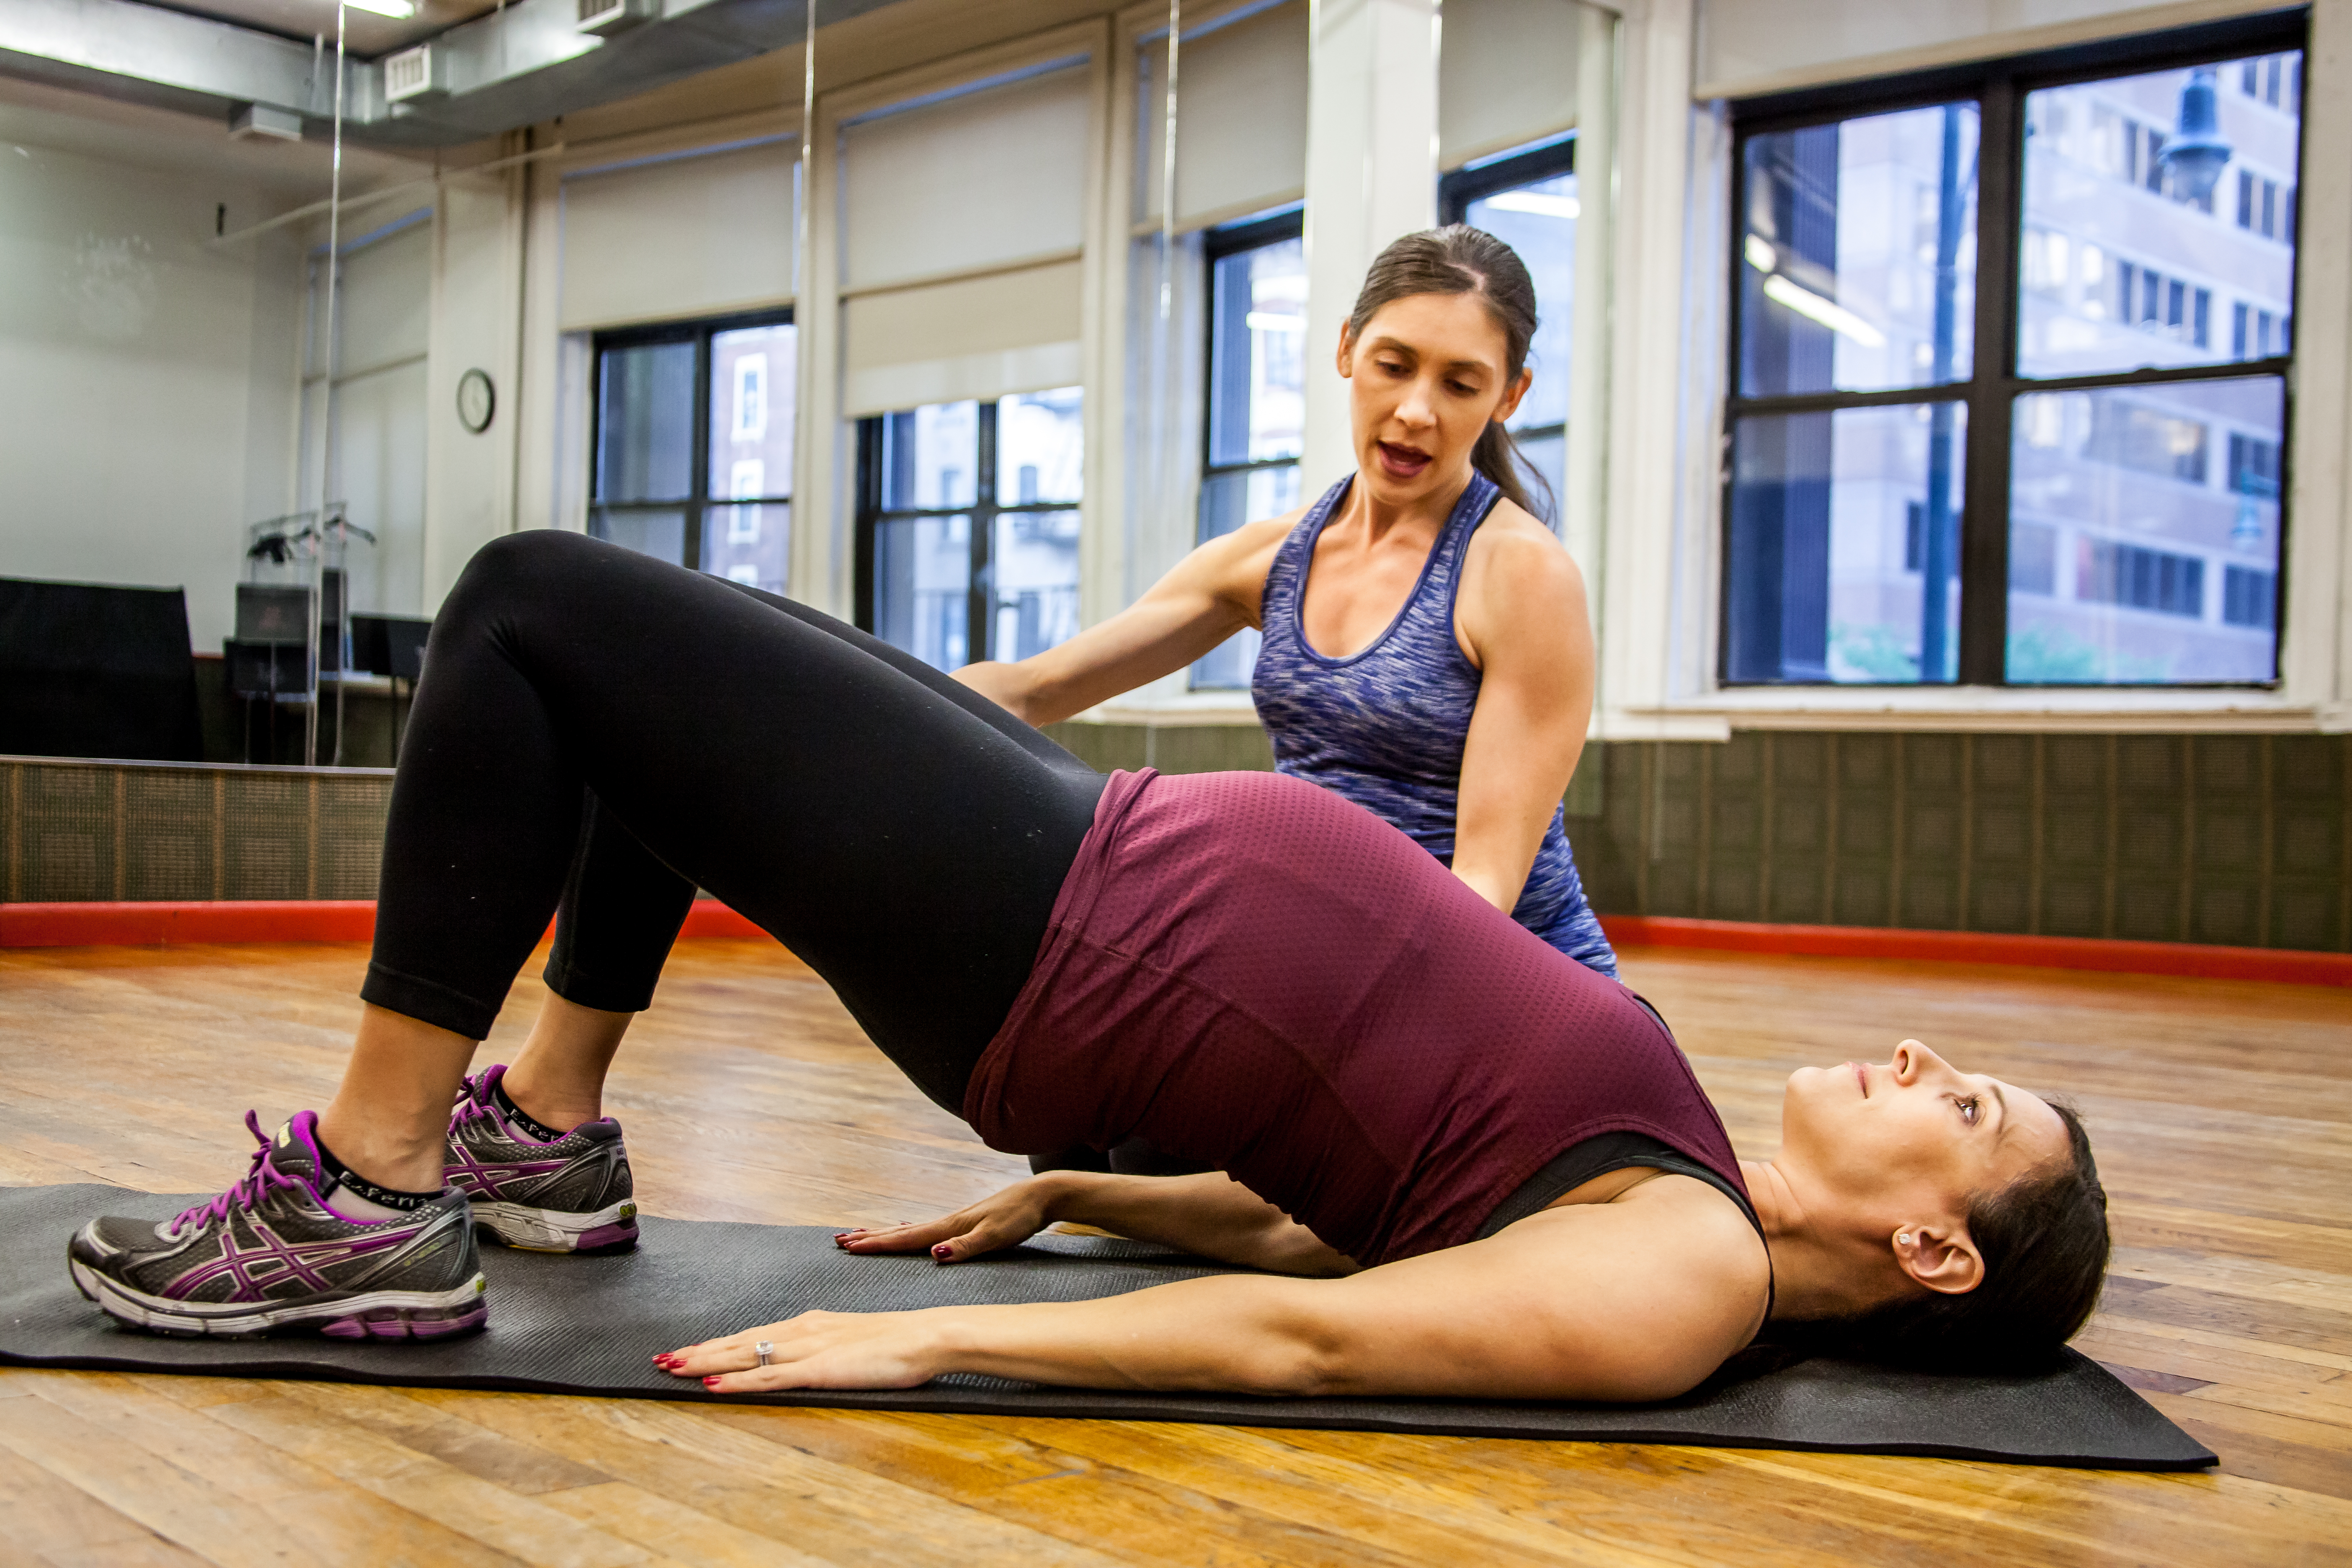 Training For Birth And Beyond A Performance Based Prepostnatal